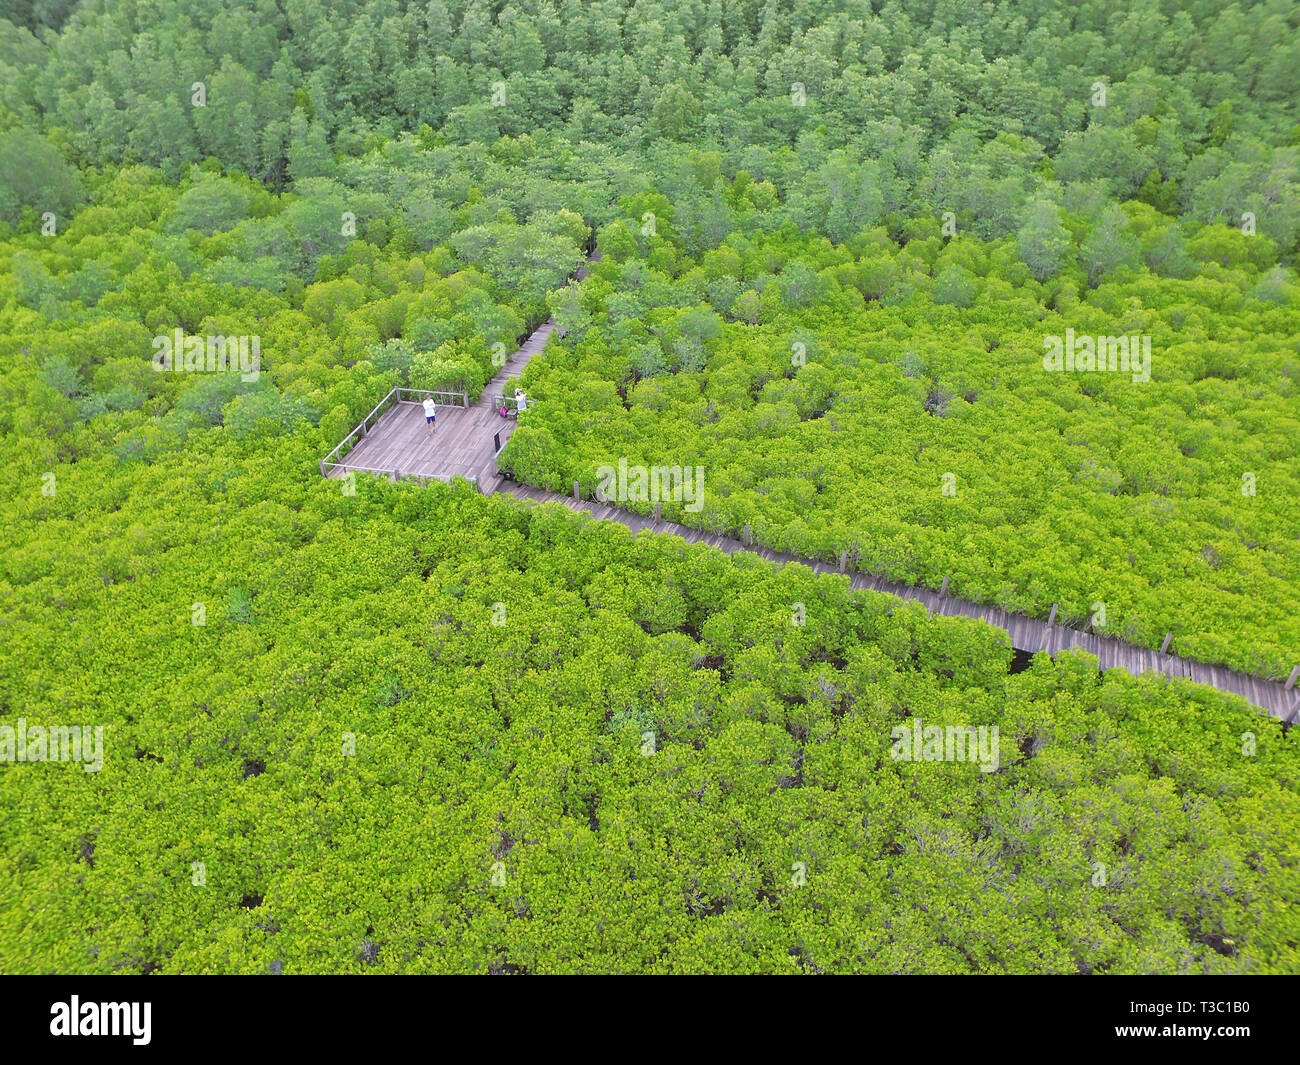 Bird Eye View by Drone of the Indian Mangrove Forest with a Couple Photographing on Wooden boardwalk, Rayong Province of Thailand - Stock Image